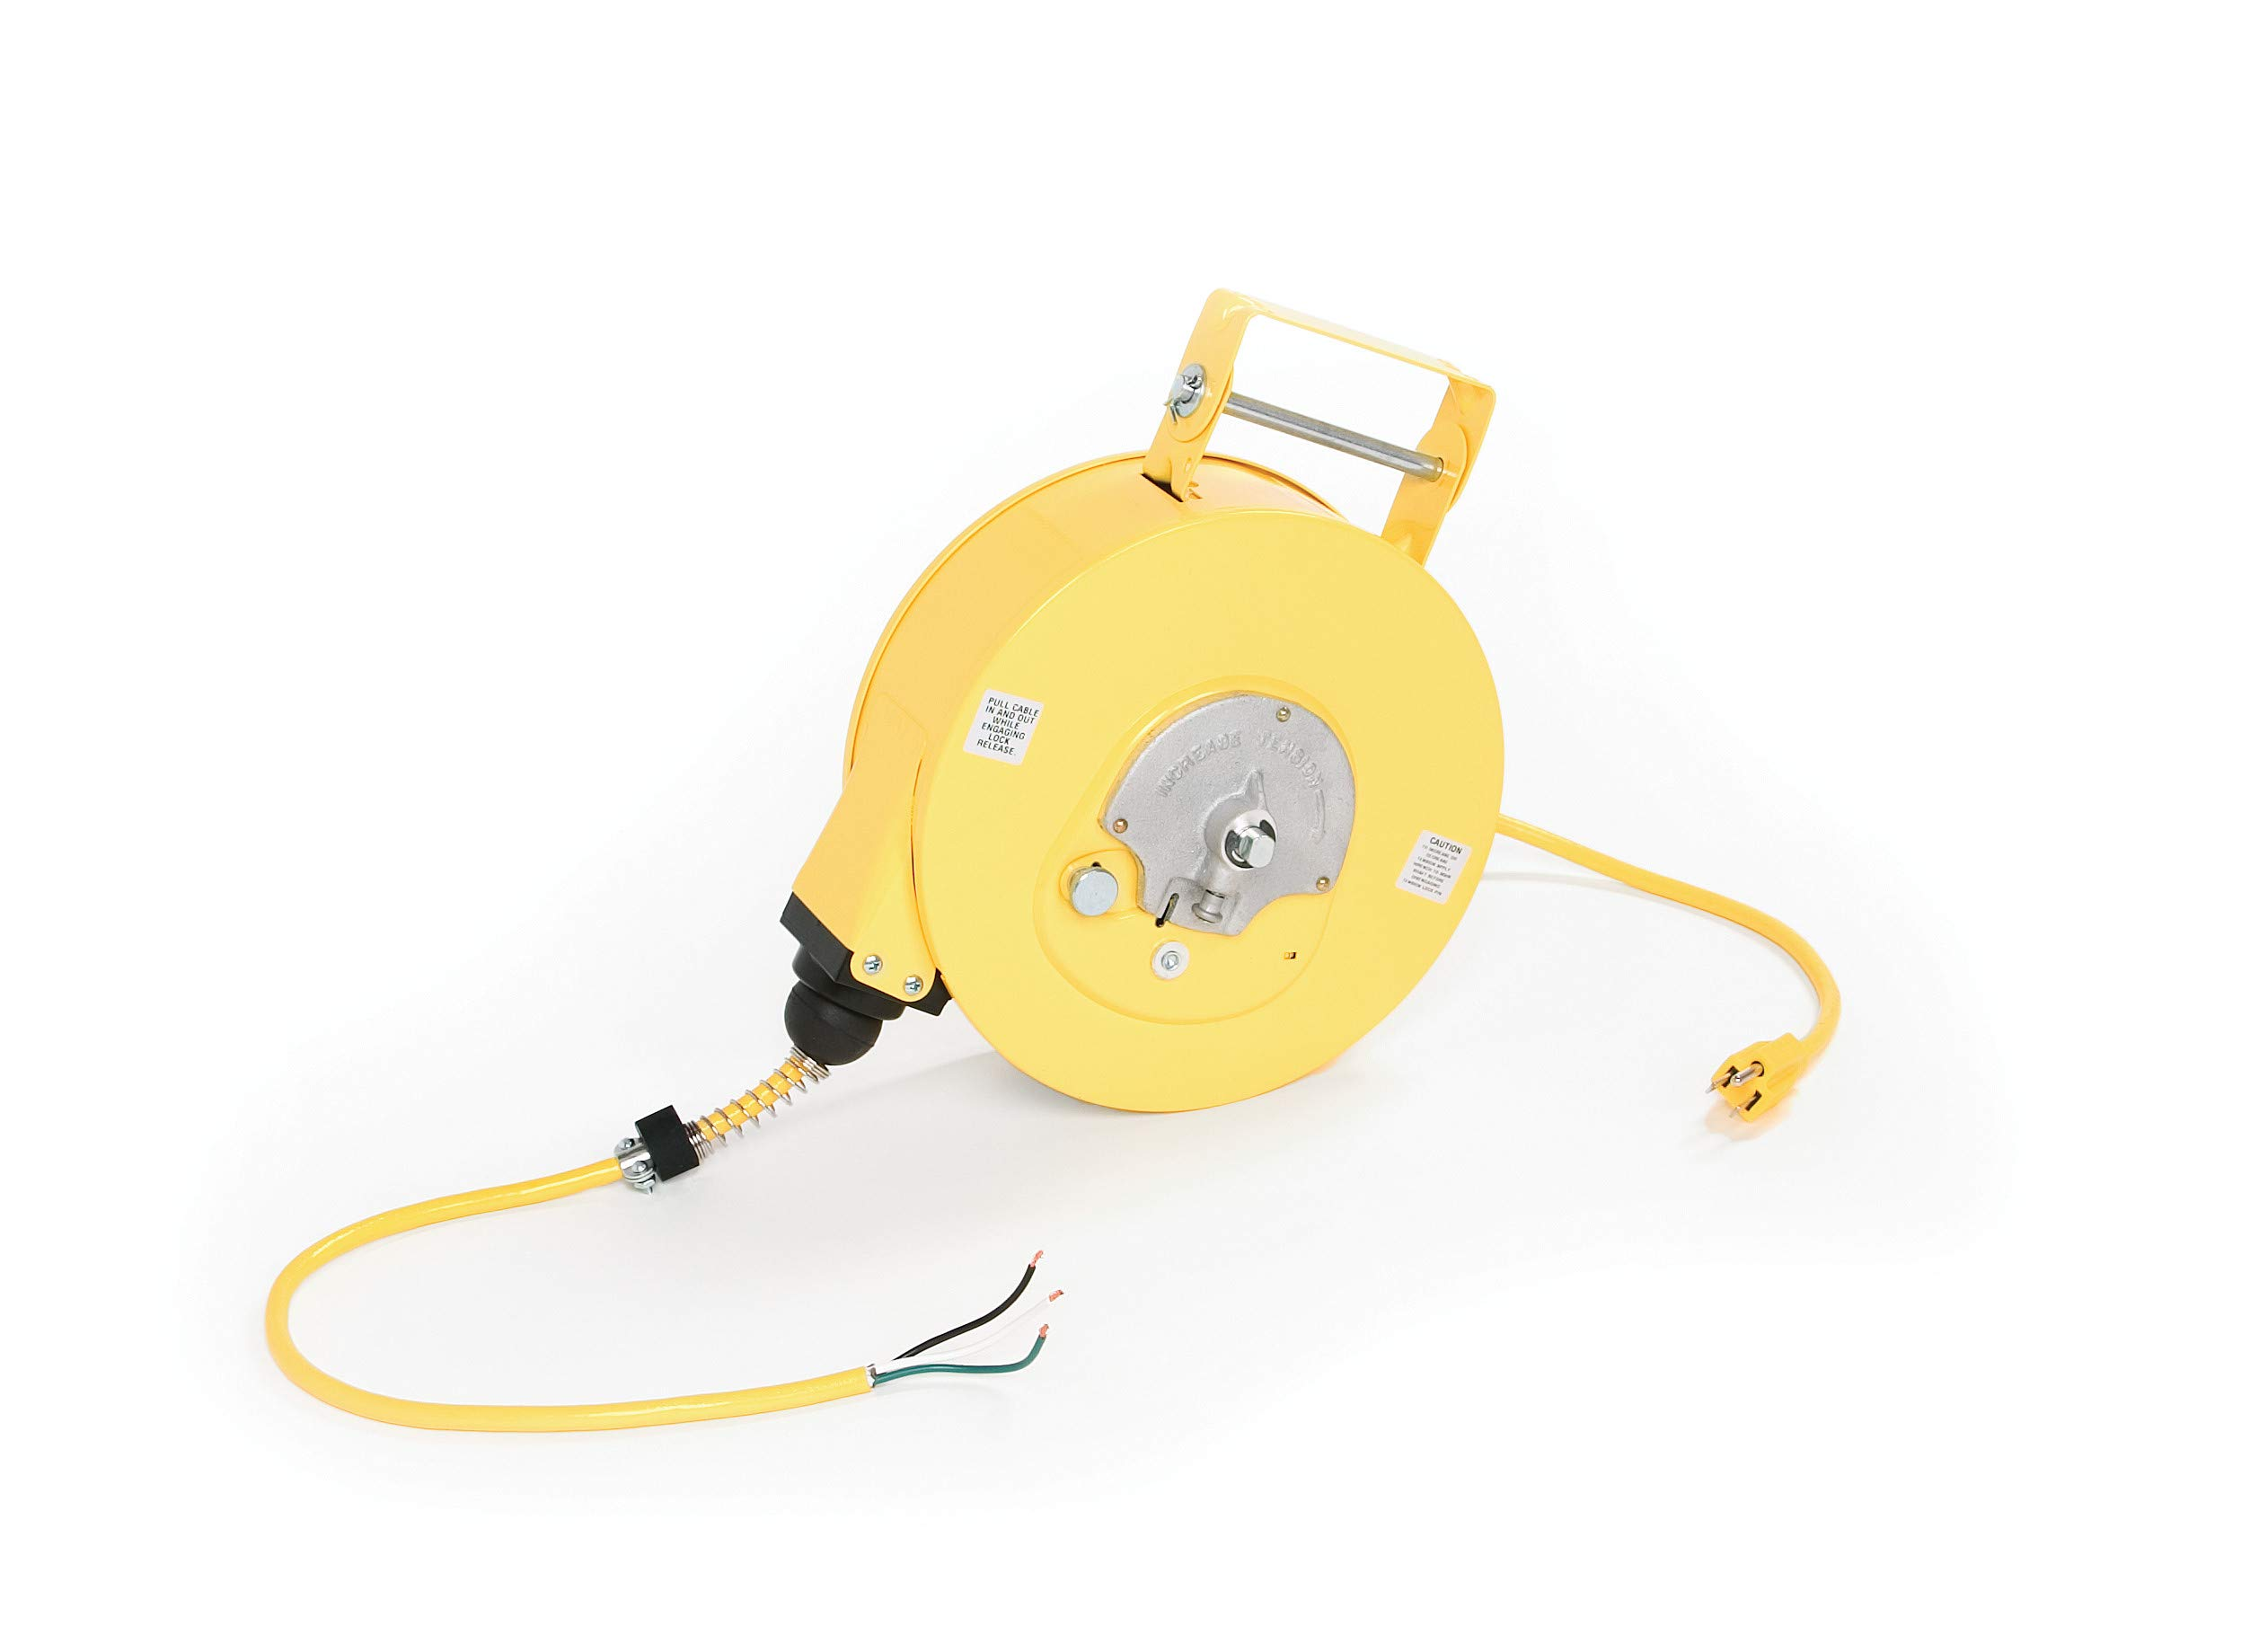 Woodhead 945-3 Cord Reel - NEMA 1 Extension Cord Case with 16/3 SJTOW, 35ft. Cord, 2A, Swing Mount, 2lb. Retraction Weight